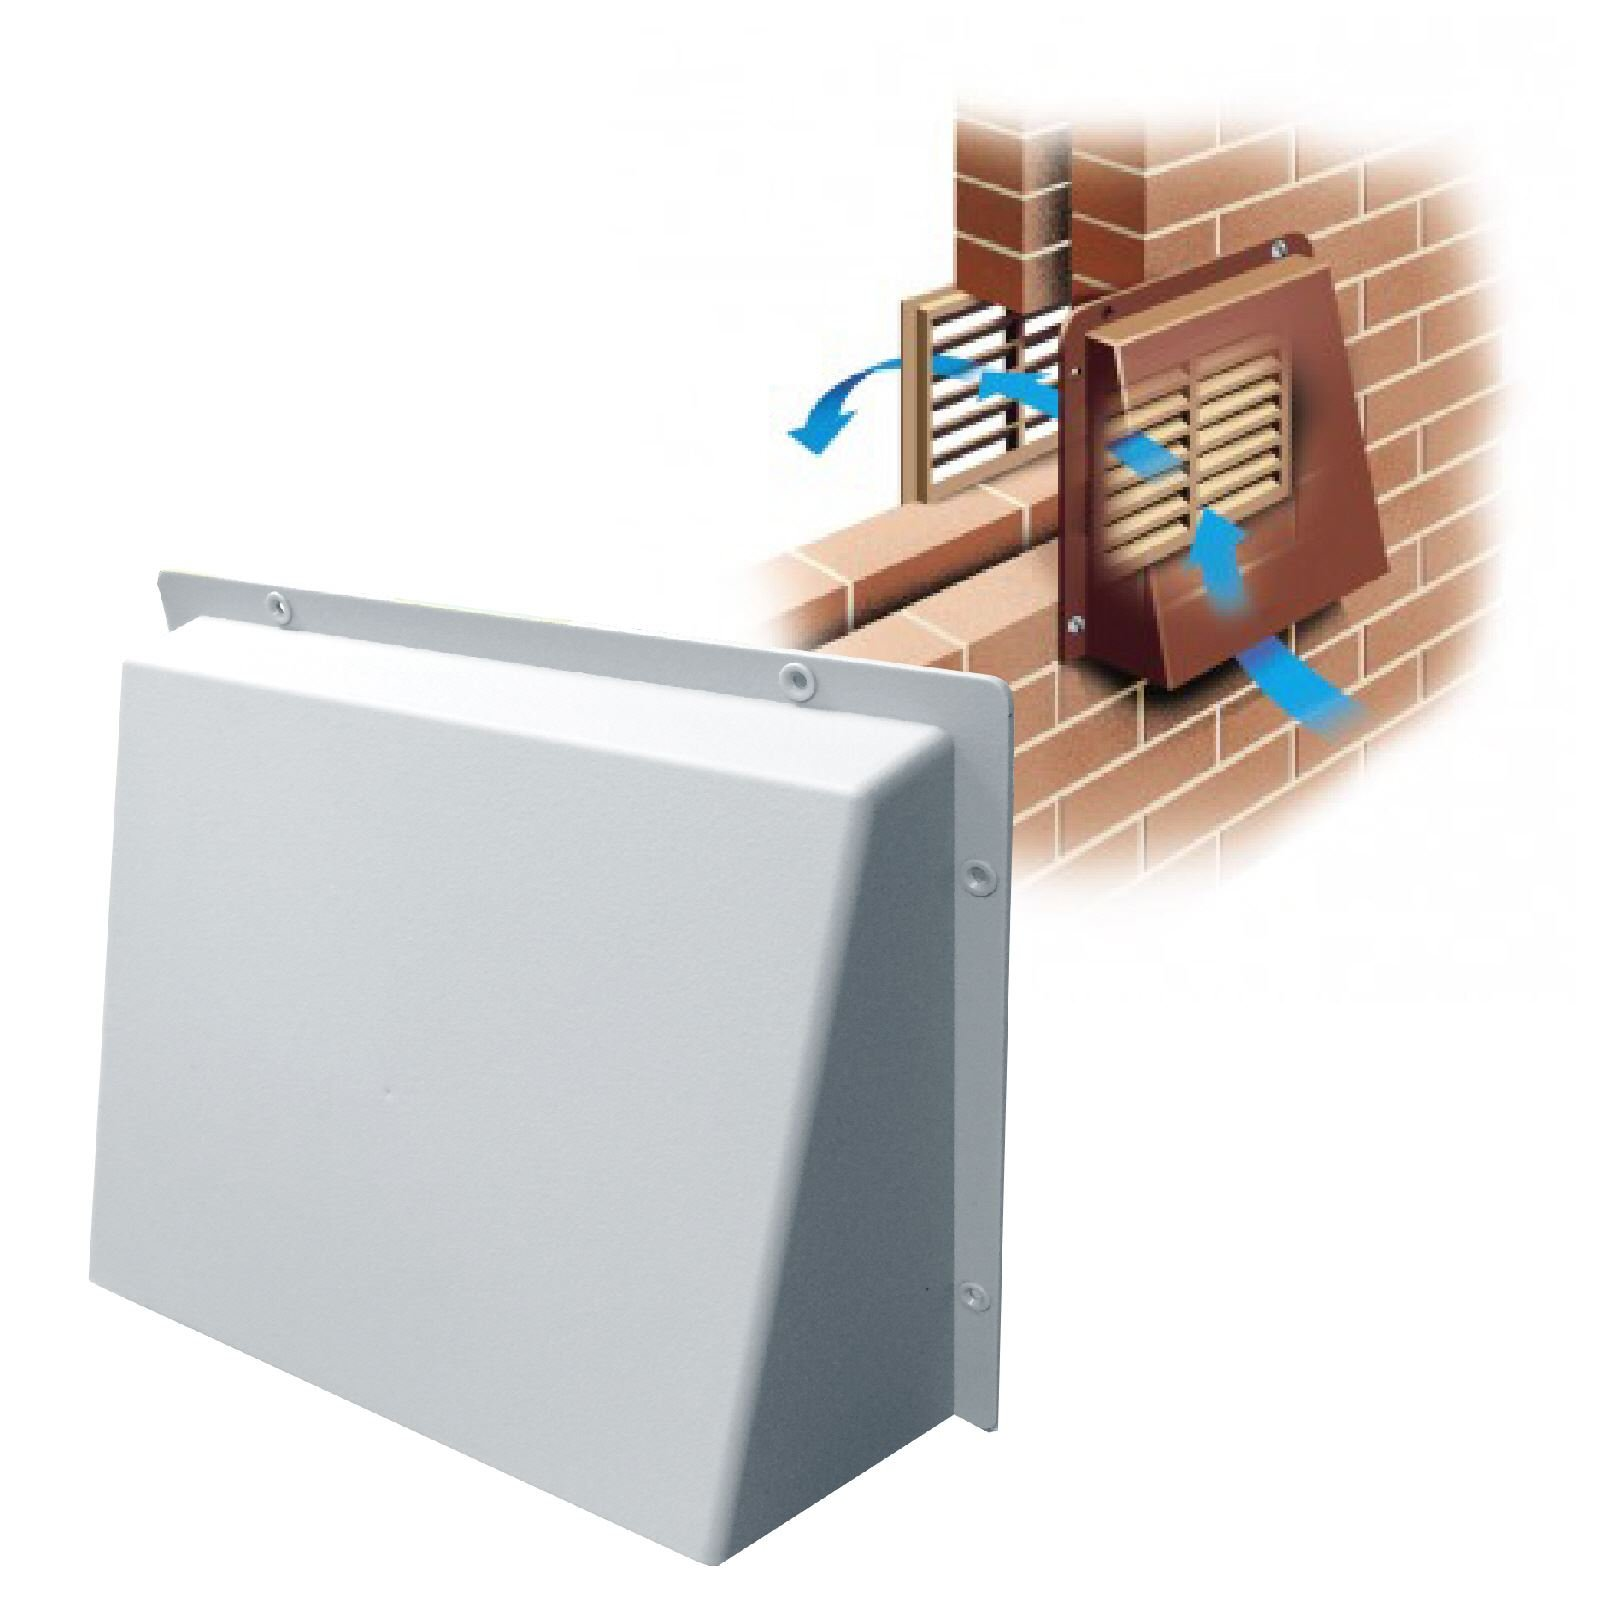 9'' x 9'' White Hooded Cowl Vent Cover for Air Bricks Grilles Extractors Vents